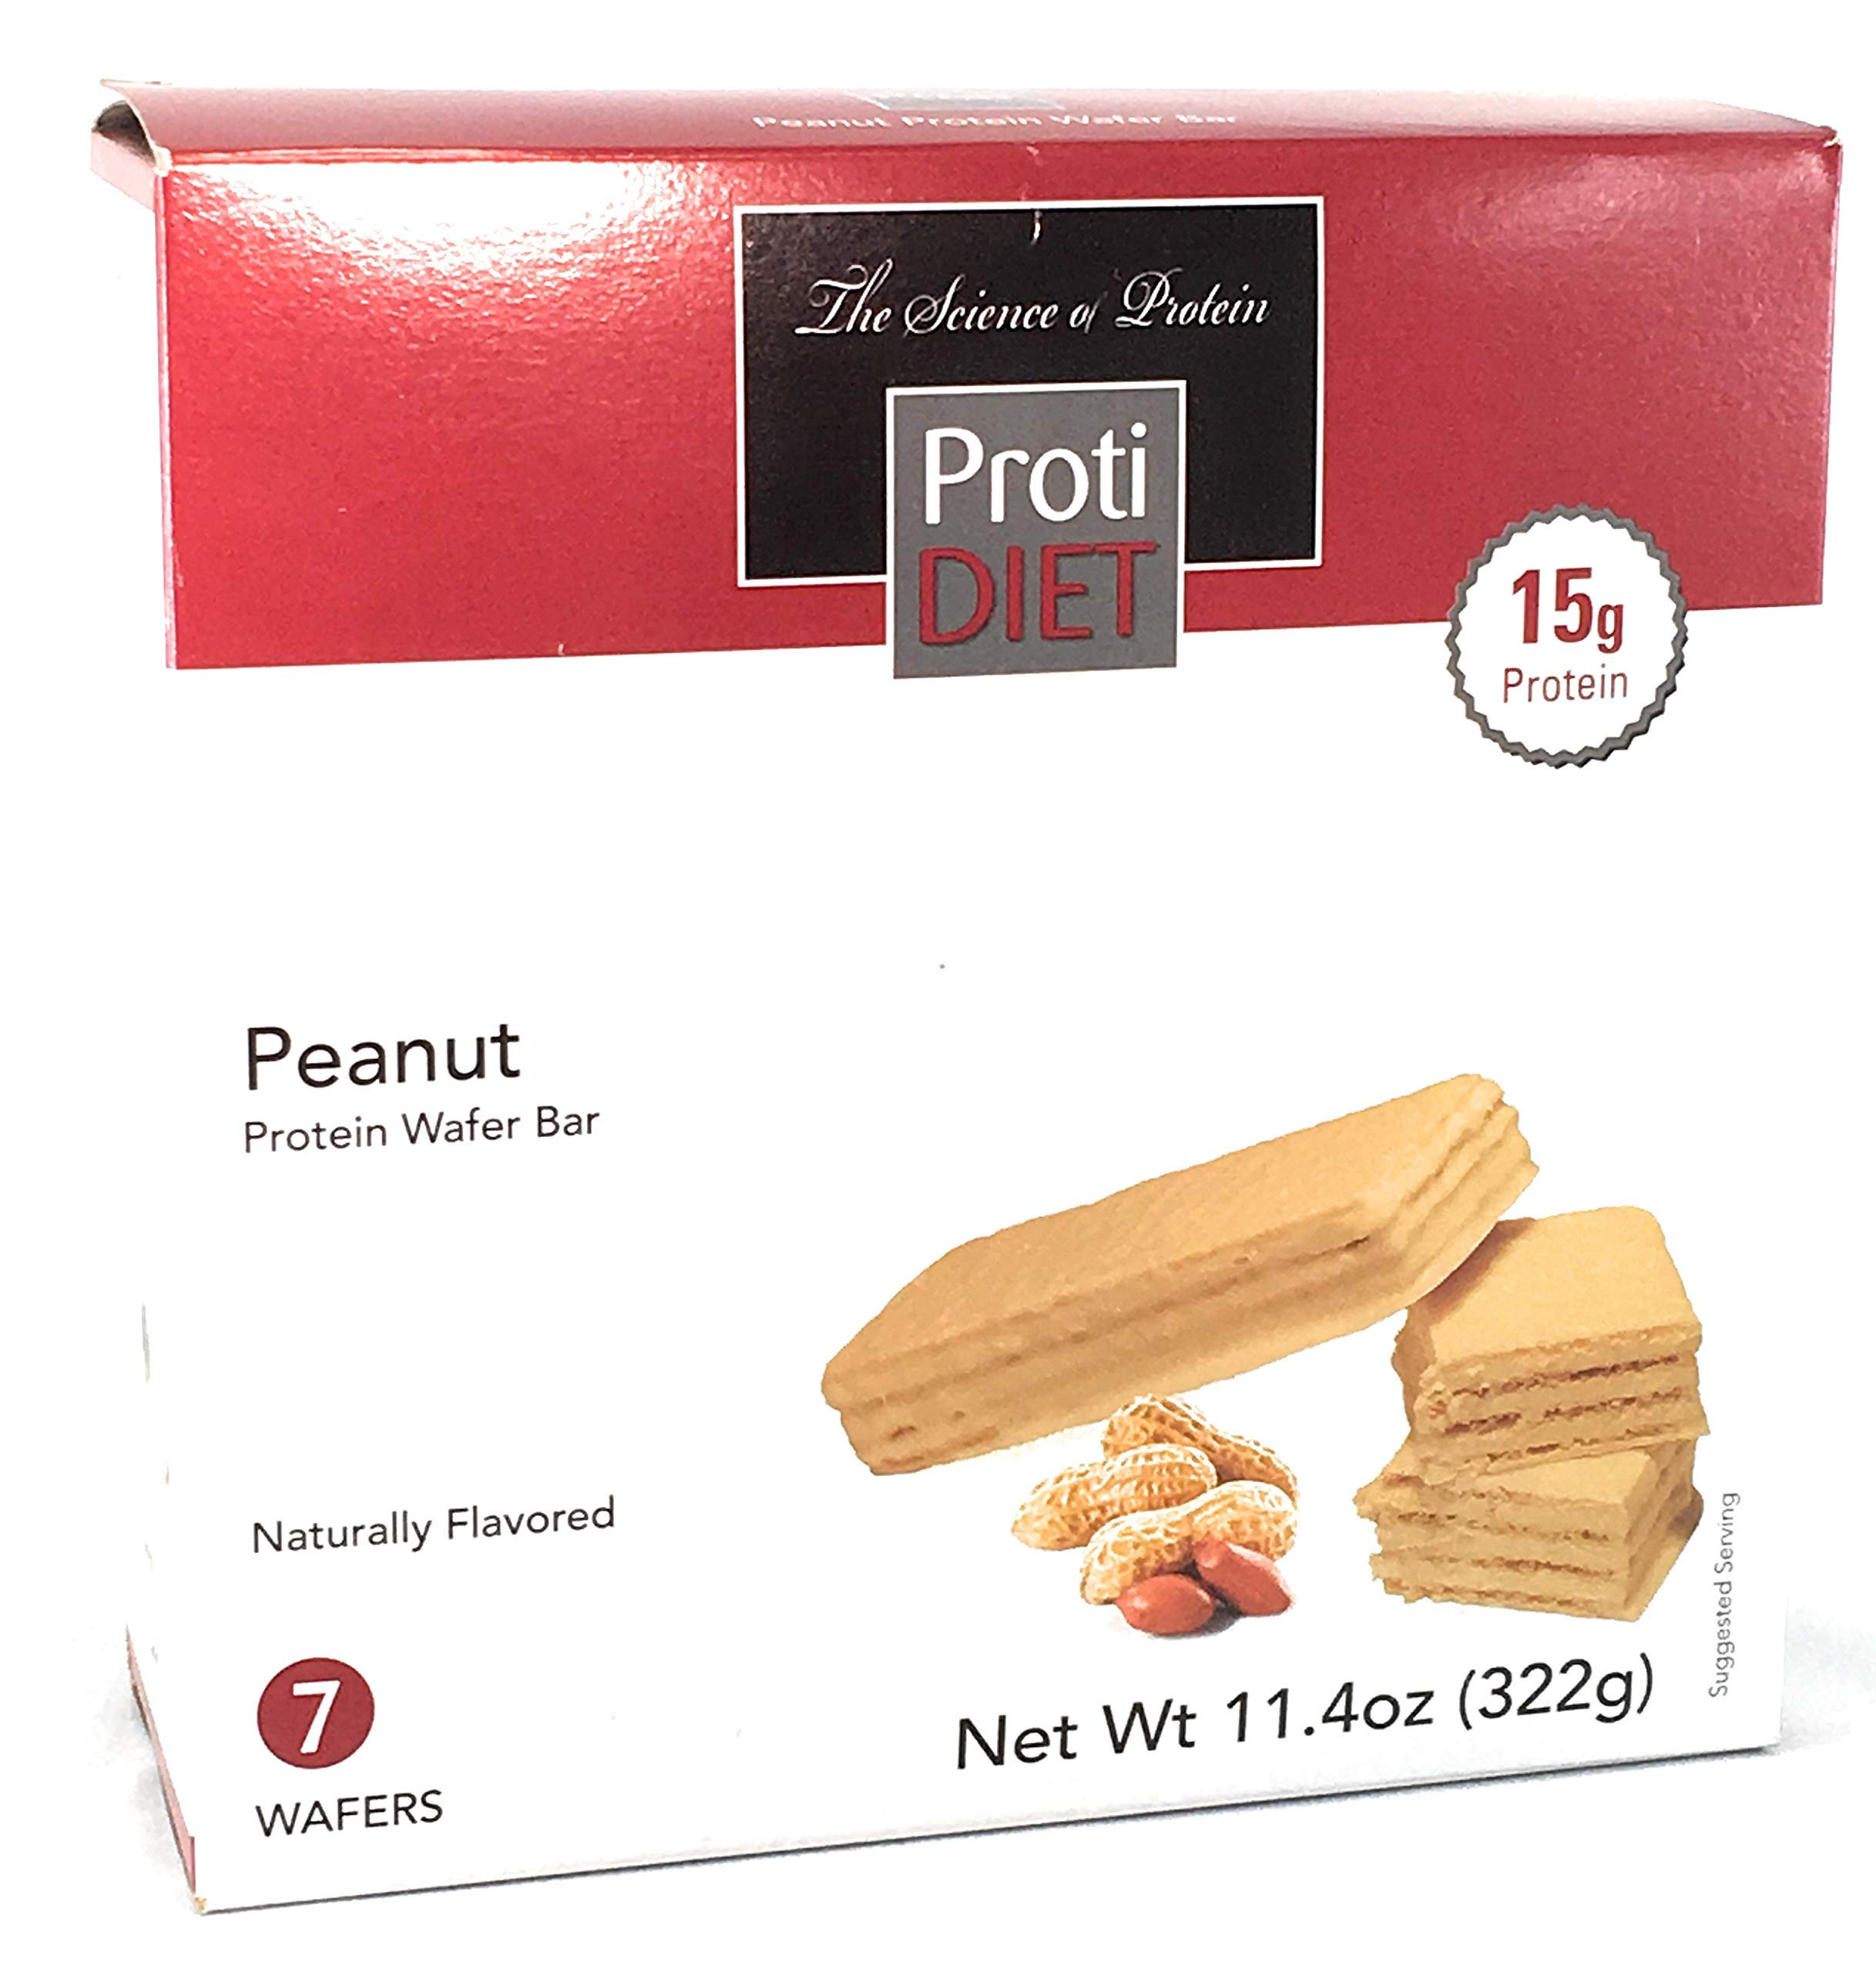 Proti Diet Peanut Wafer Bar - by Being Well Essentials - 7 wafers - 15g Protein (6 Pack -42 wafers)